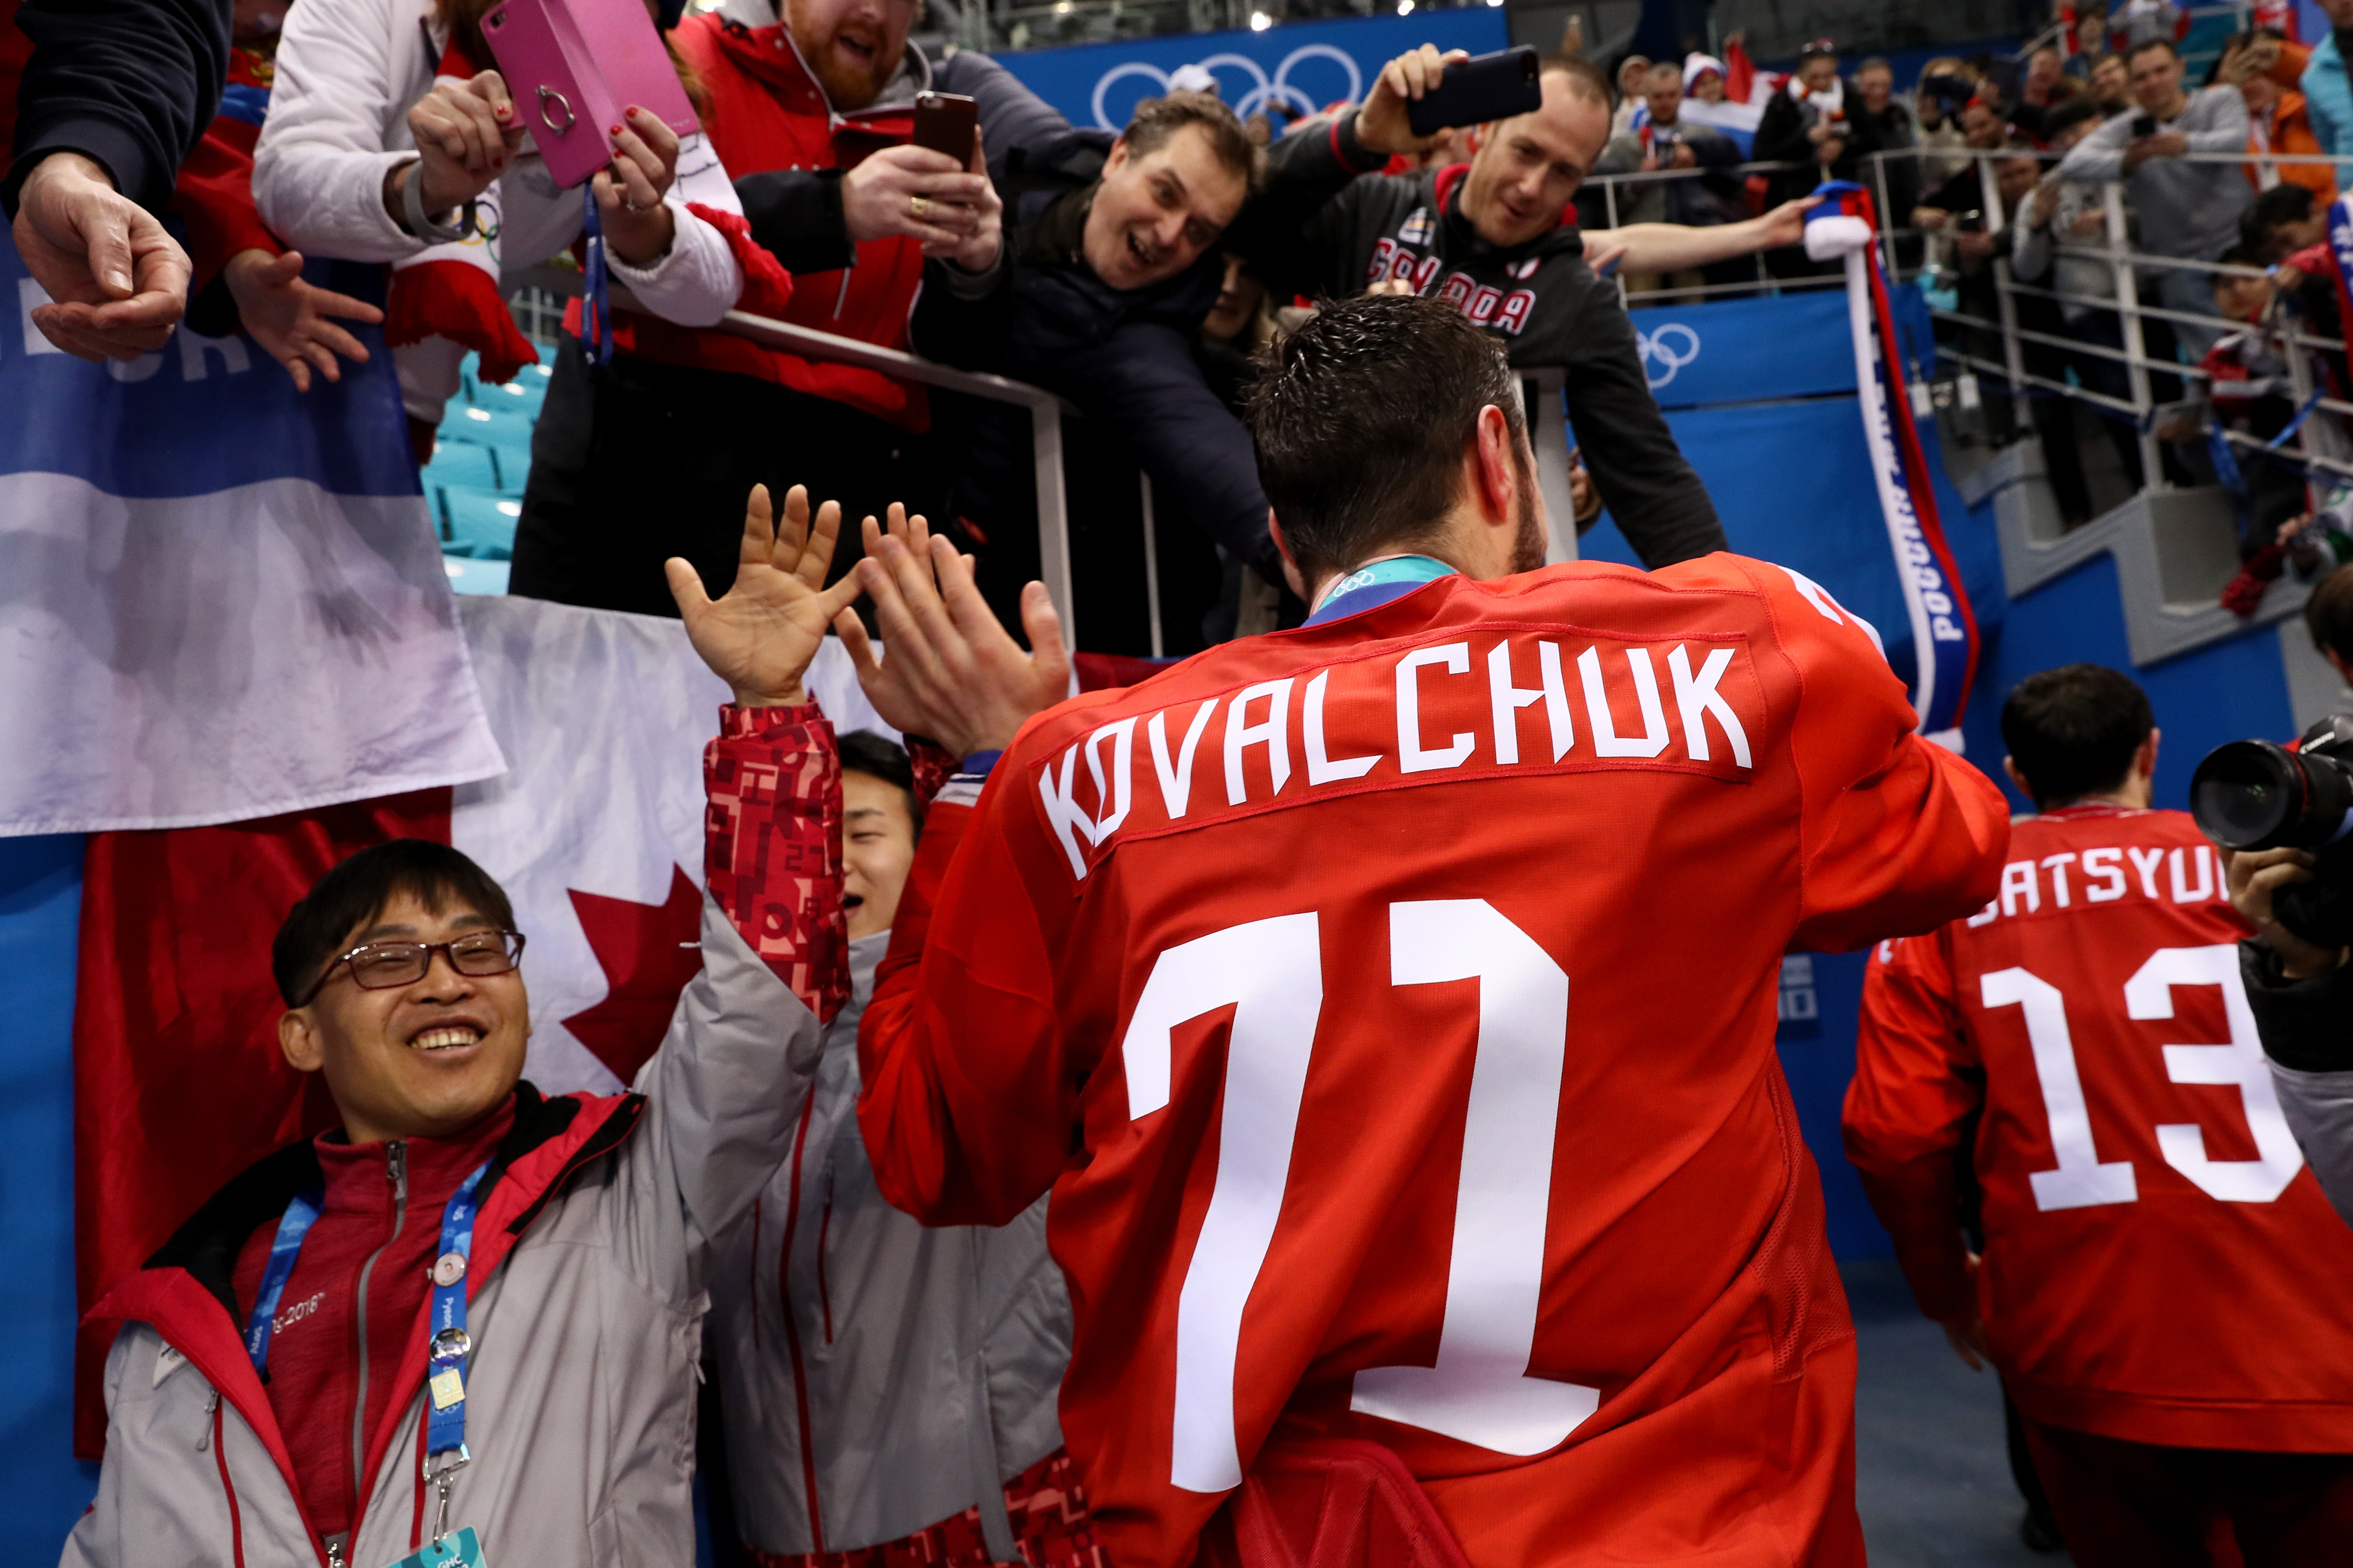 GANGNEUNG, SOUTH KOREA - FEBRUARY 25: Gold medal winner Ilya Kovalchuk #71 of Olympic Athlete from Russia celebrates after defeating Germany 4-3 in overtime during the Men's Gold Medal Game on day sixteen of the PyeongChang 2018 Winter Olympic Games at Ga